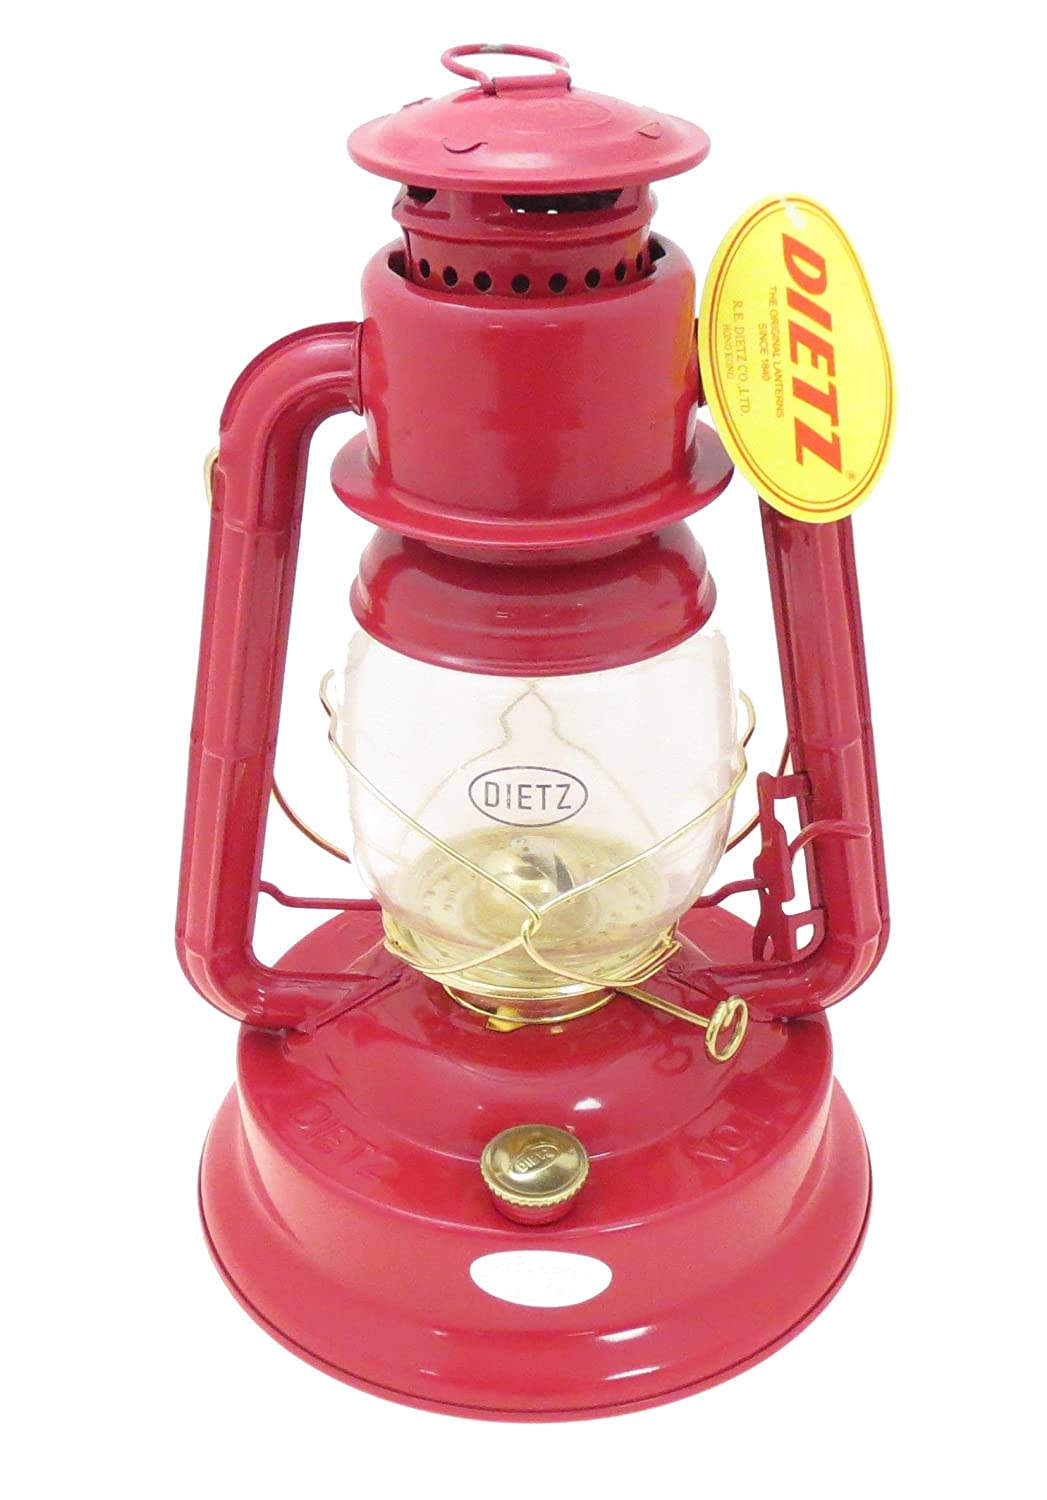 Top 10 Best Oil Lamp Reviews in 2021 2